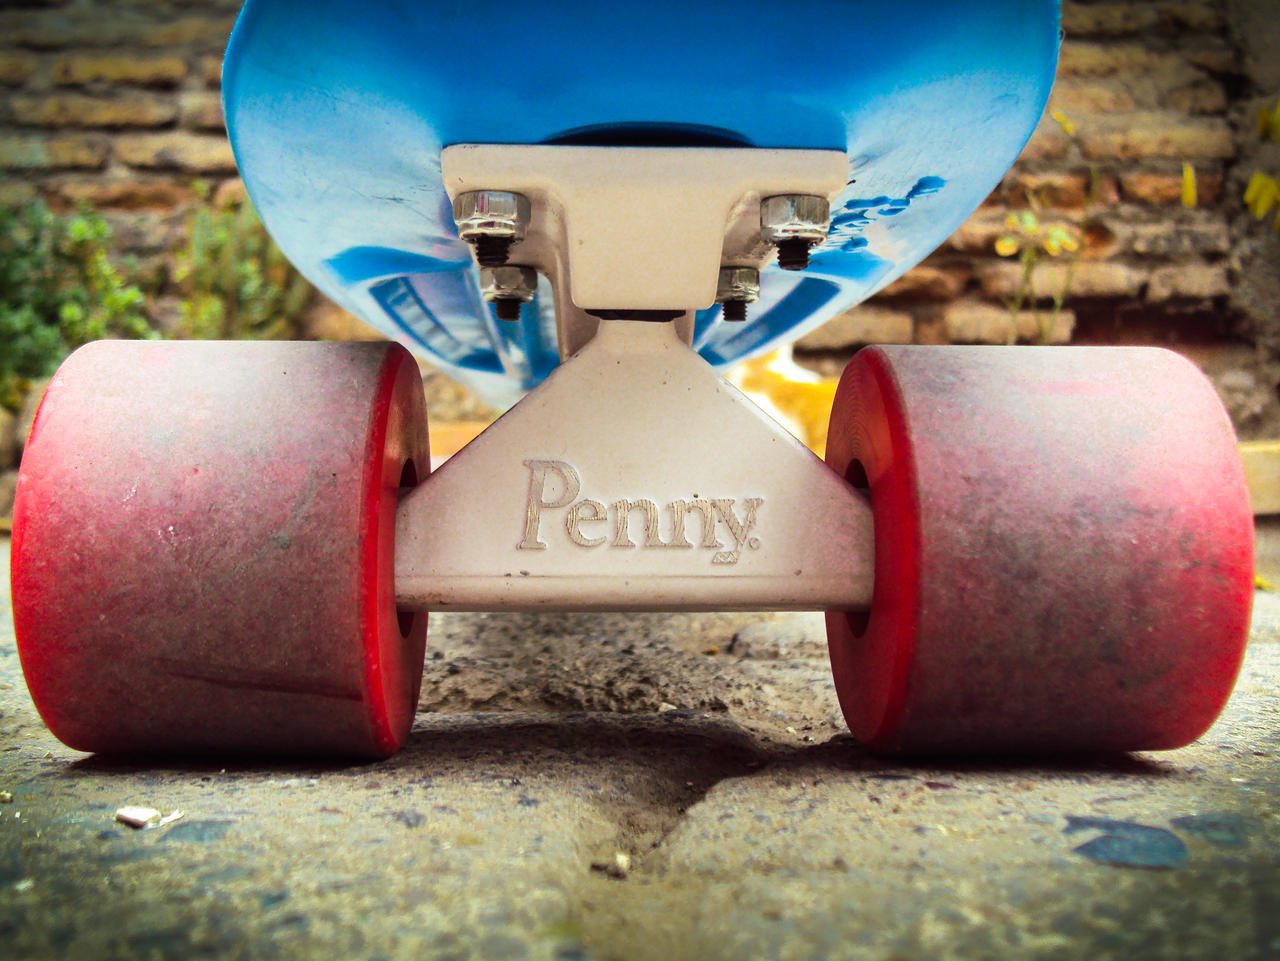 Penny Board by mathiavelic-kuroro on DeviantArt